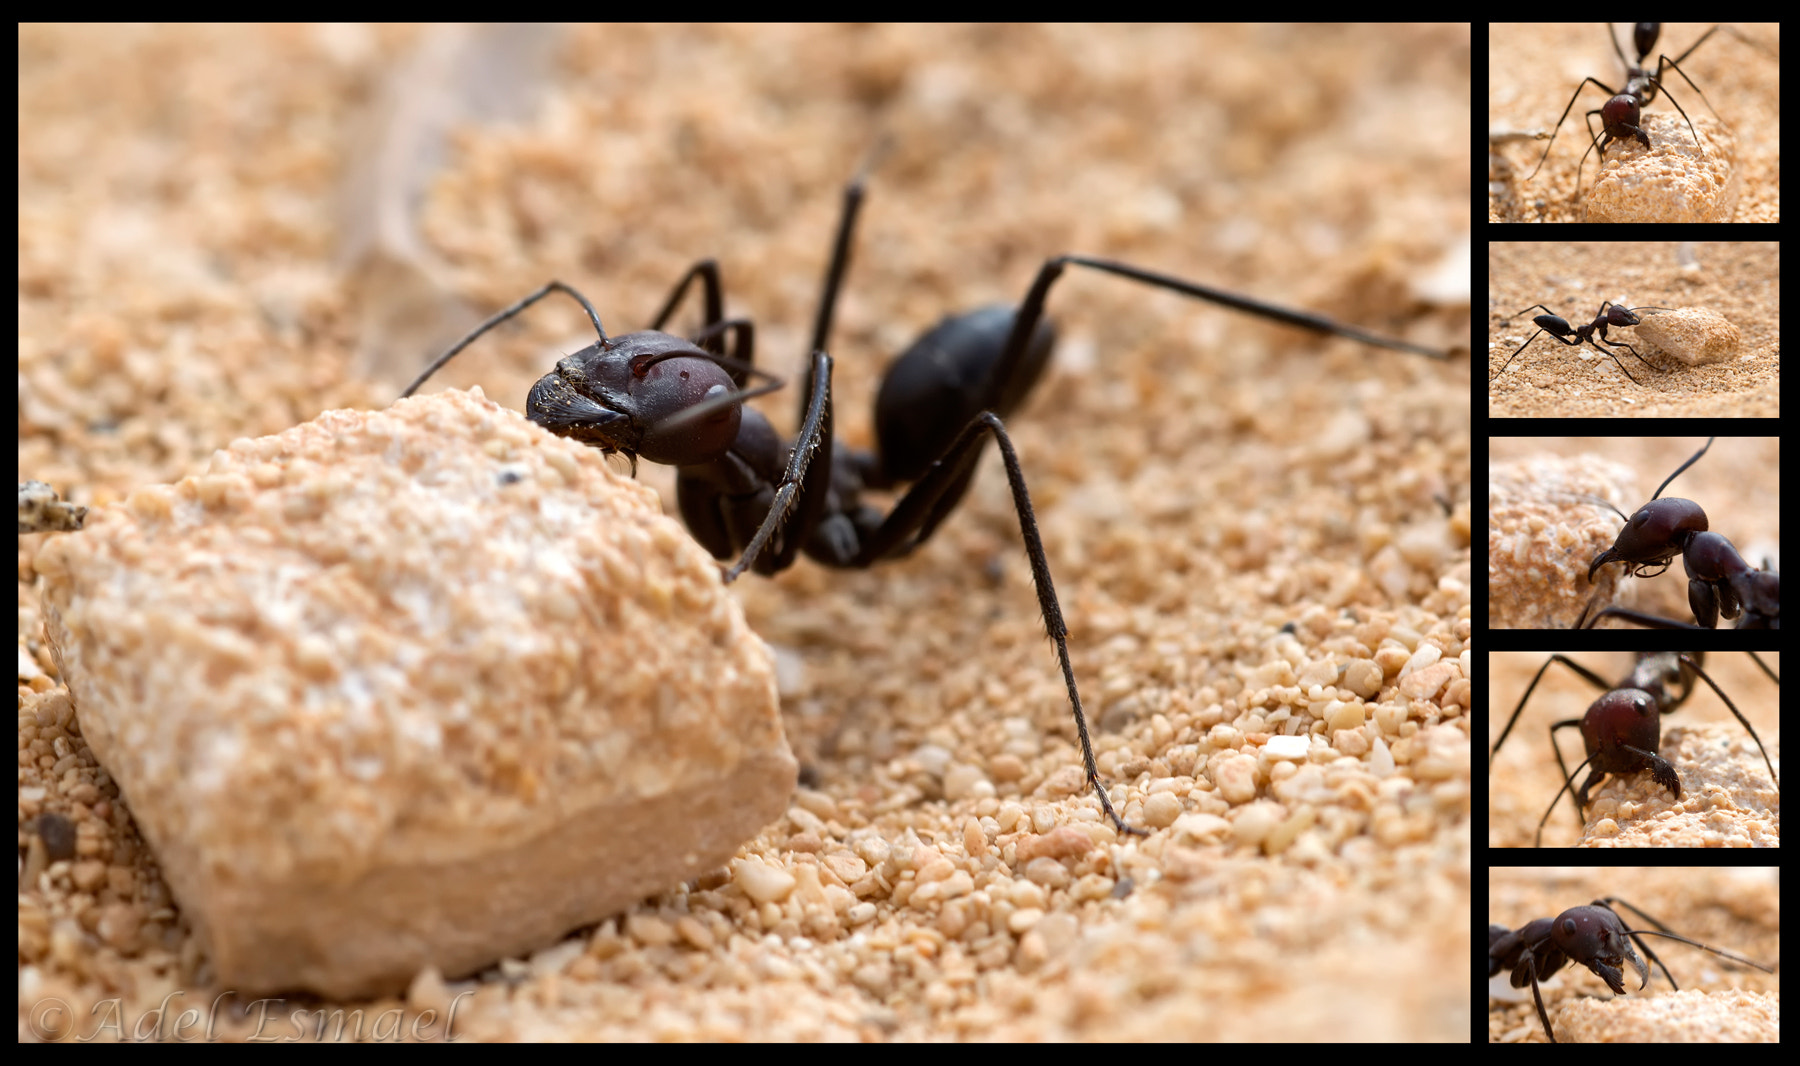 Photograph A Very Busy Ant! by Adel Esmael on 500px